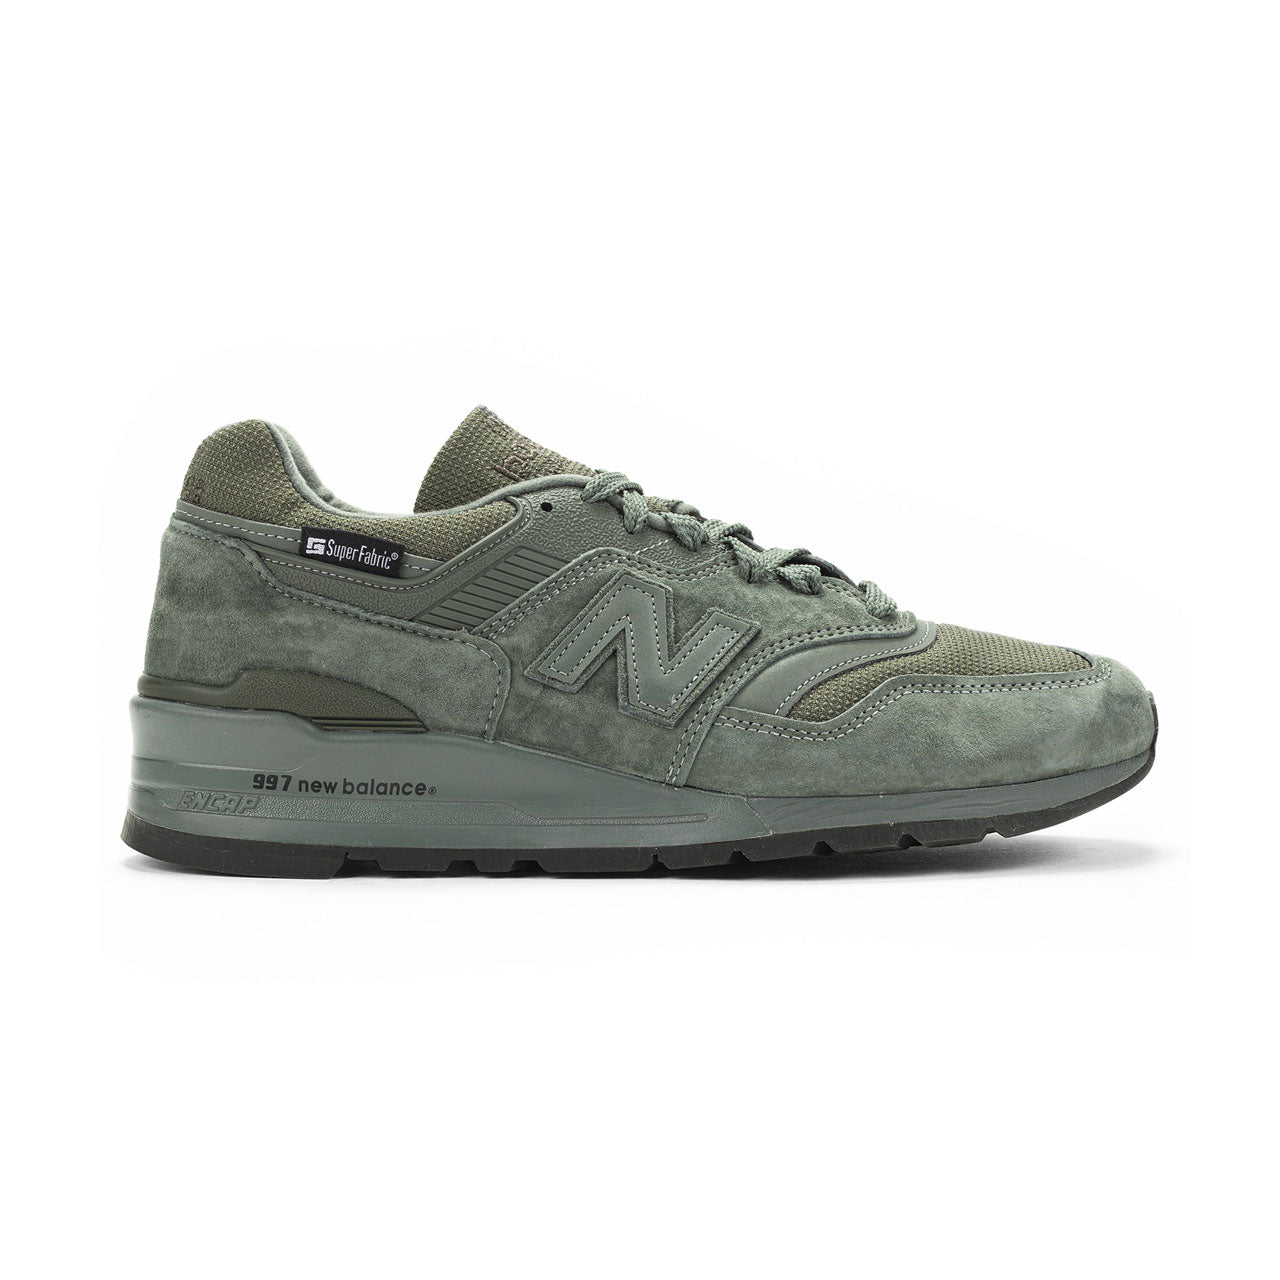 chaussures new balance homme 997